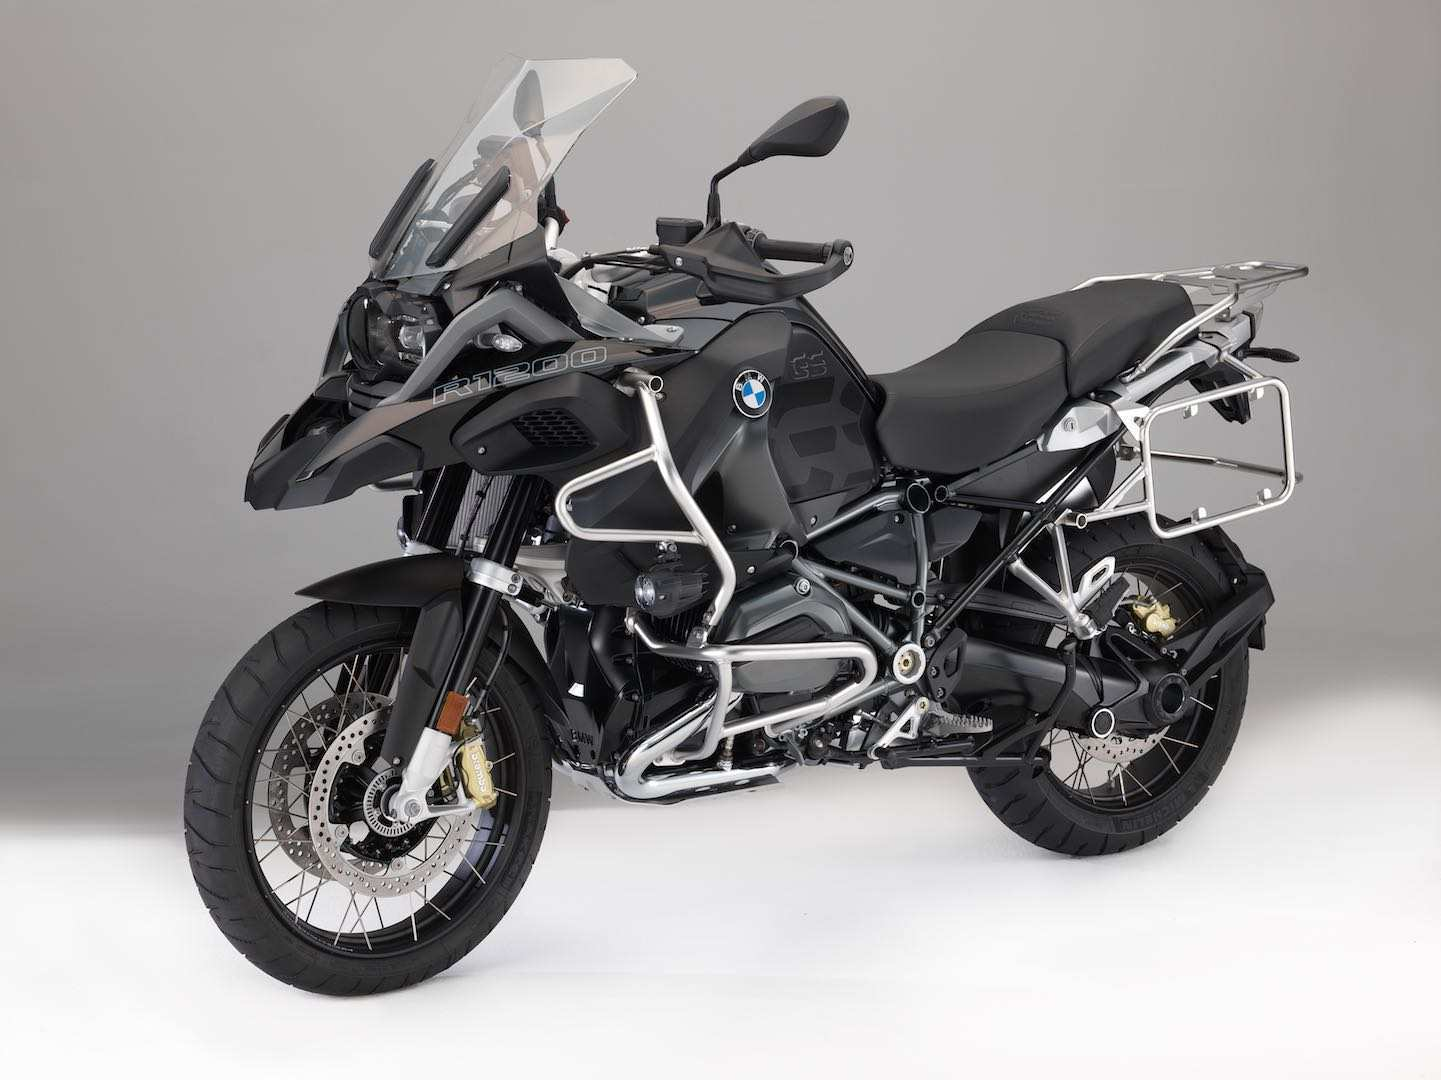 65 All New 2020 Bmw Gs Exterior and Interior with 2020 Bmw Gs